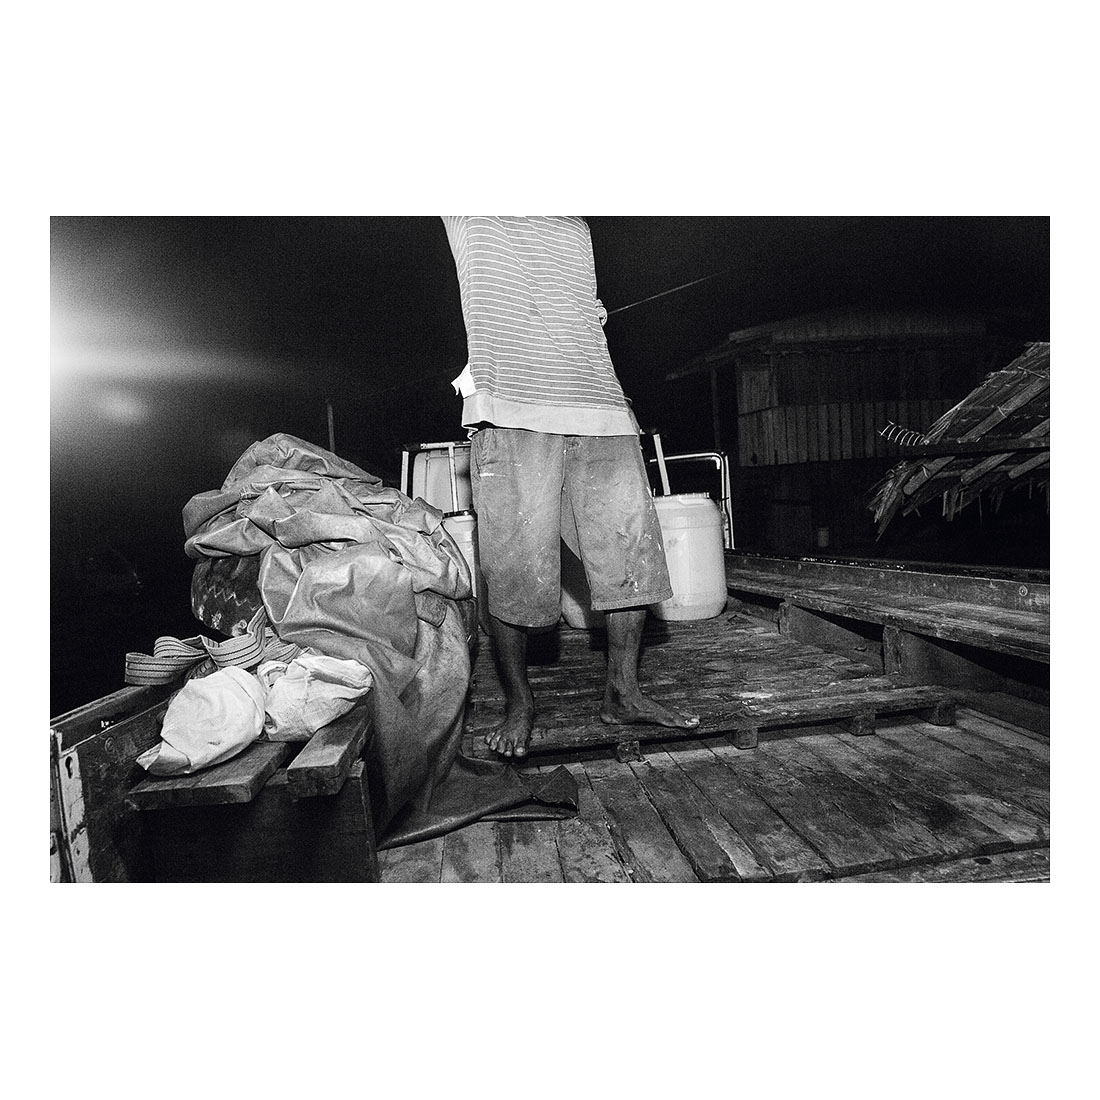 #38 Asimana, Malaita, Solomon Islands  (2016).  Archival pigment print on Ilford paper. Exhibition print 24cm x 36cm. Different sizes available.